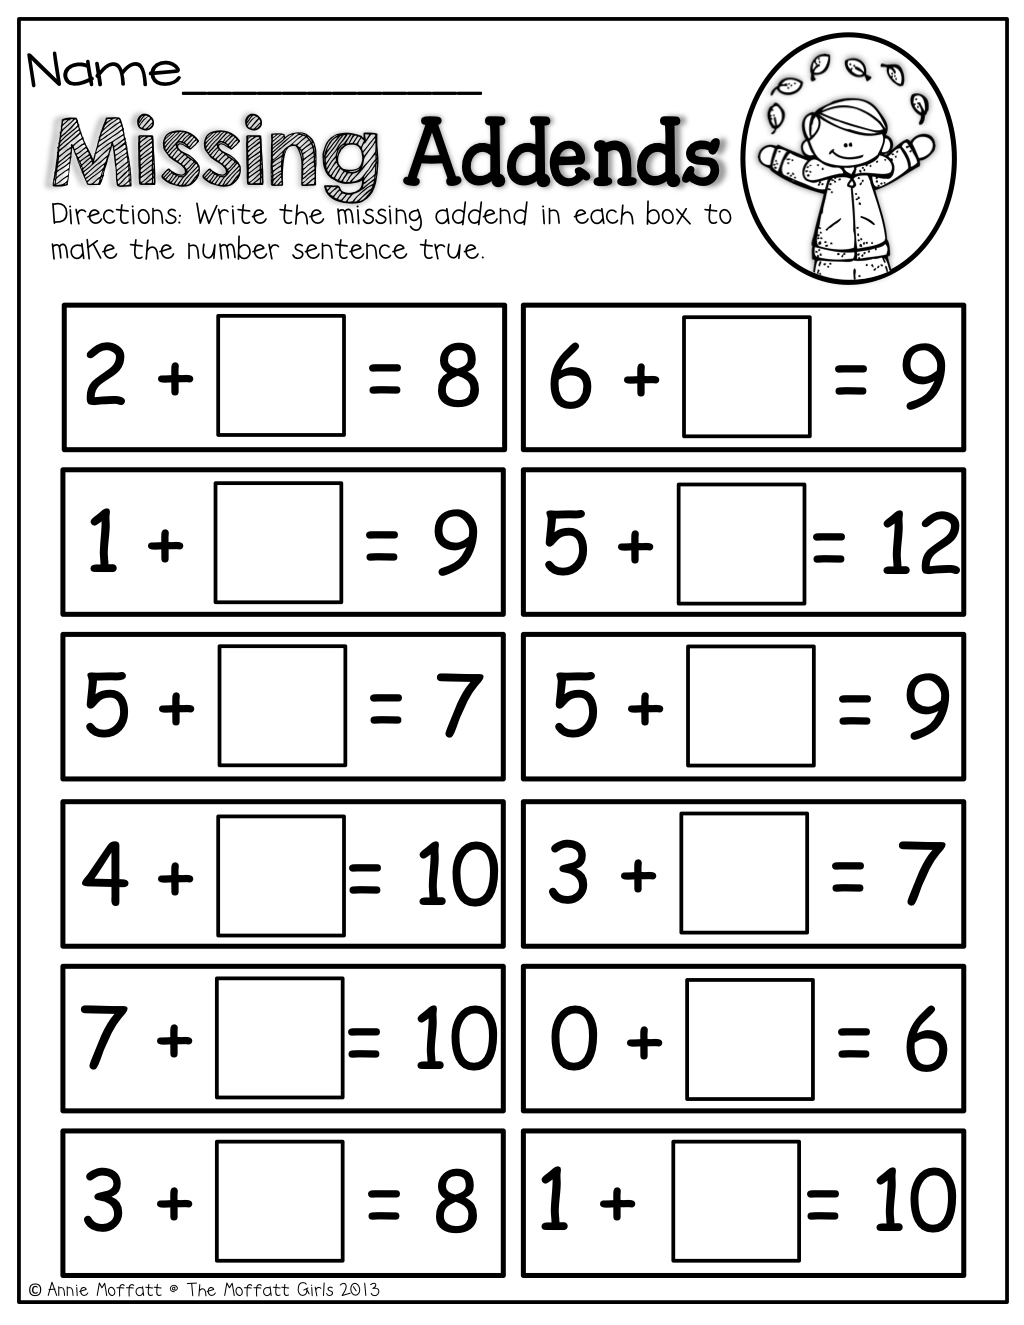 Missing Addends! | Math | Pinterest | Maths, School and Worksheets